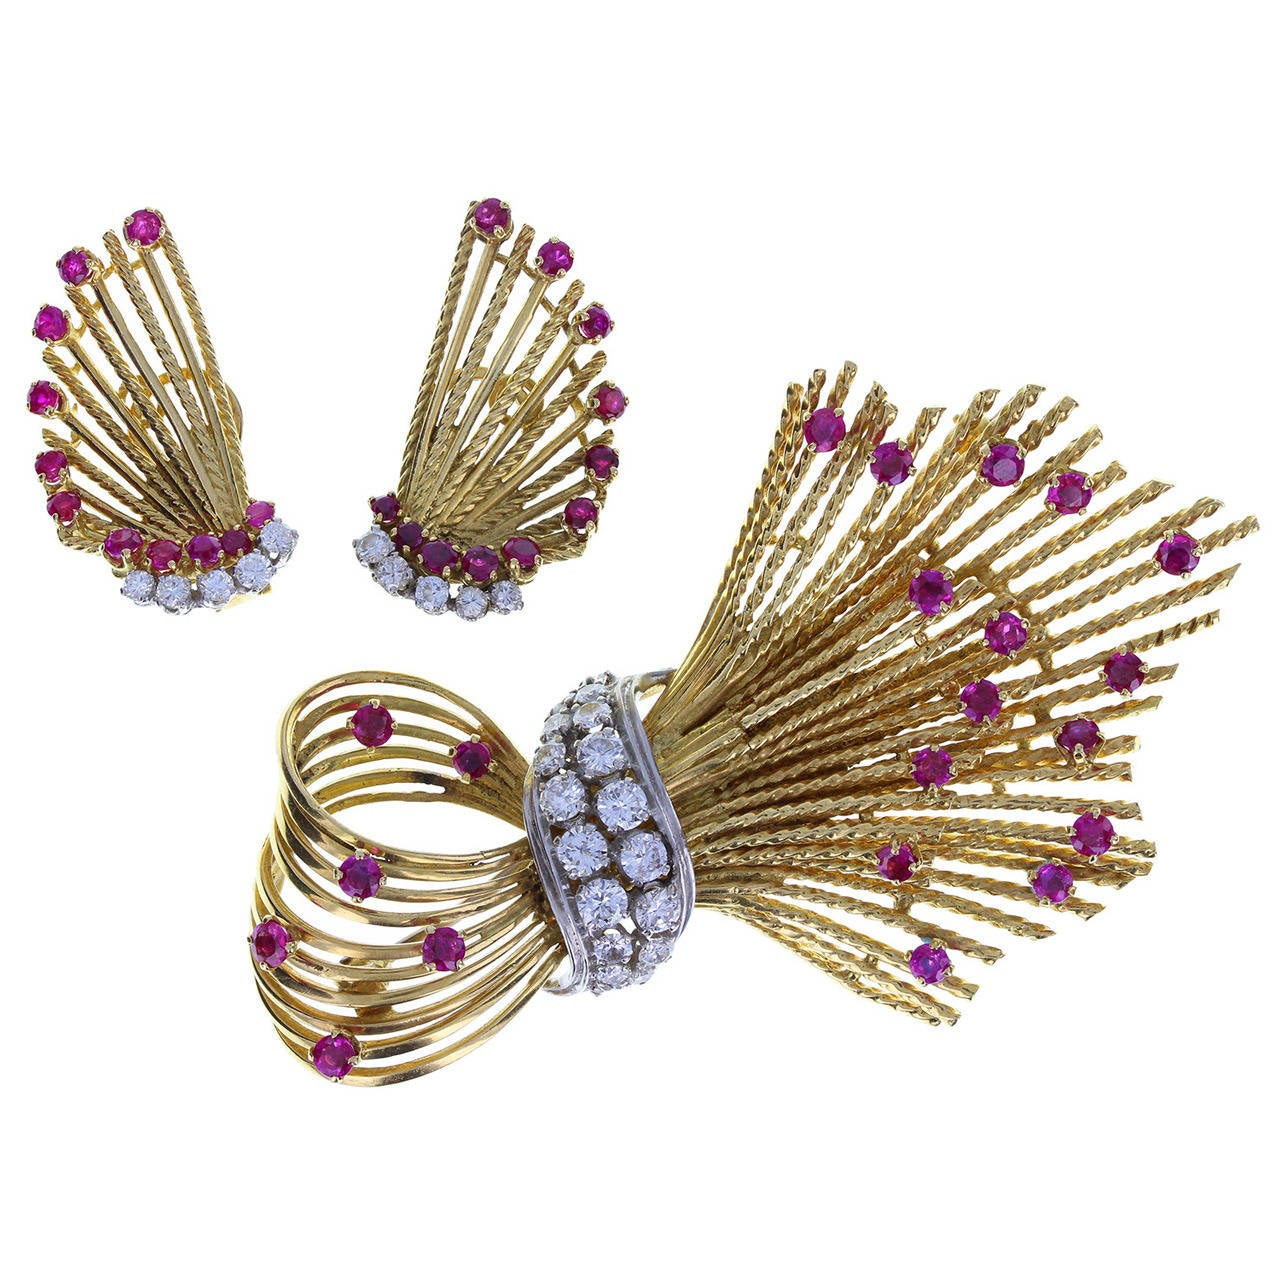 Kutchinsky Ruby Diamond Gold Spray Brooch and Earrings